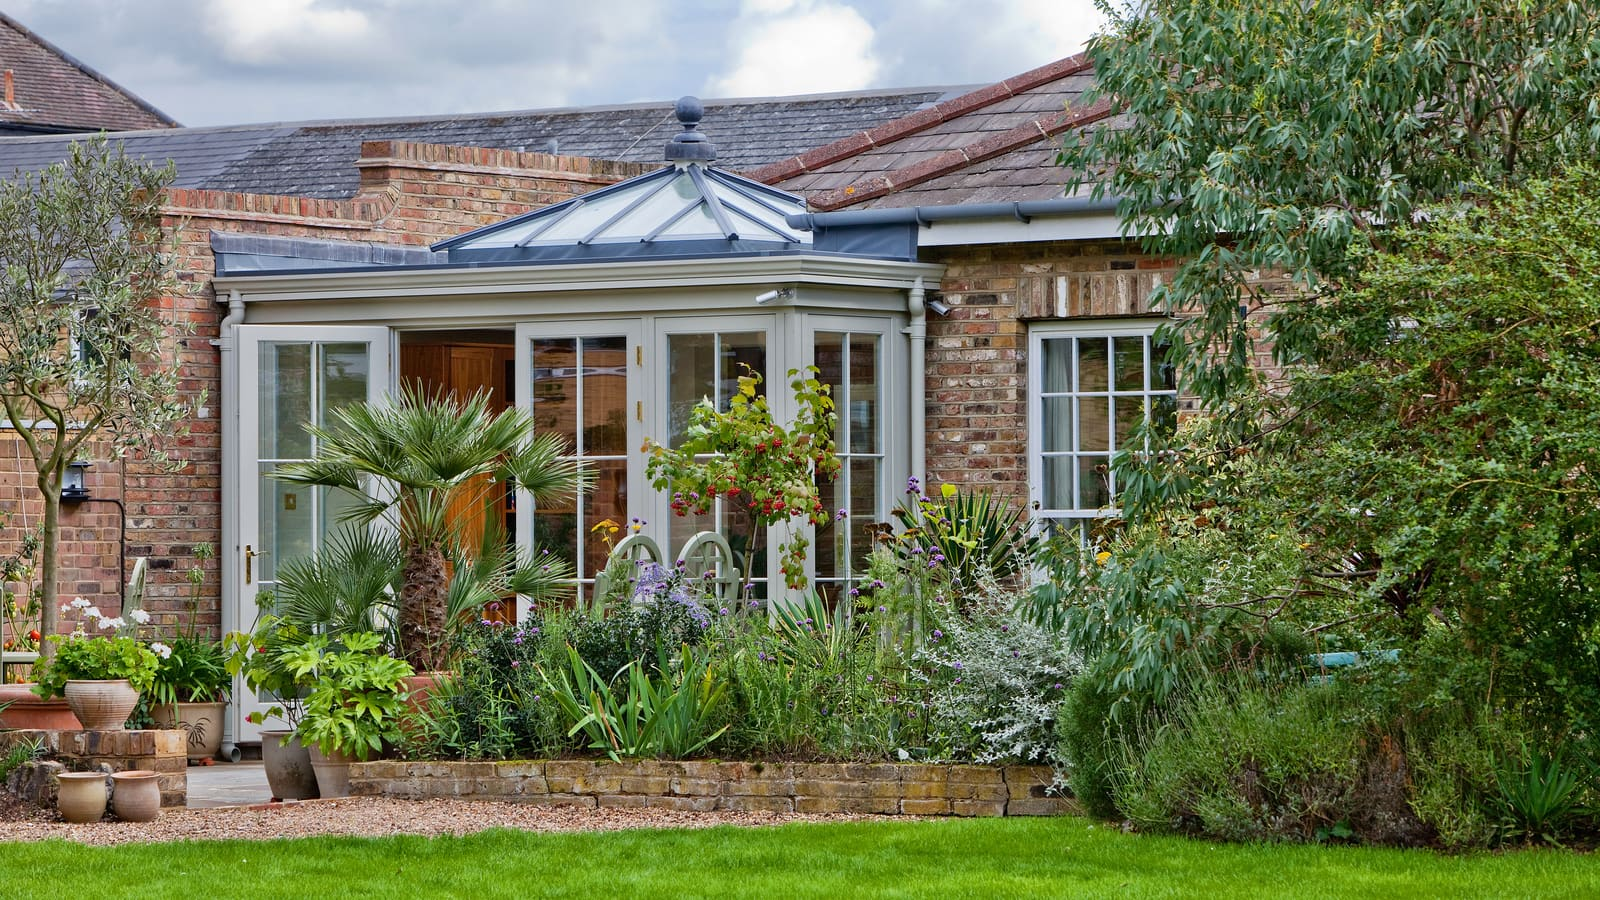 A timber orangery extension looking out onto a charming city courtyard garden